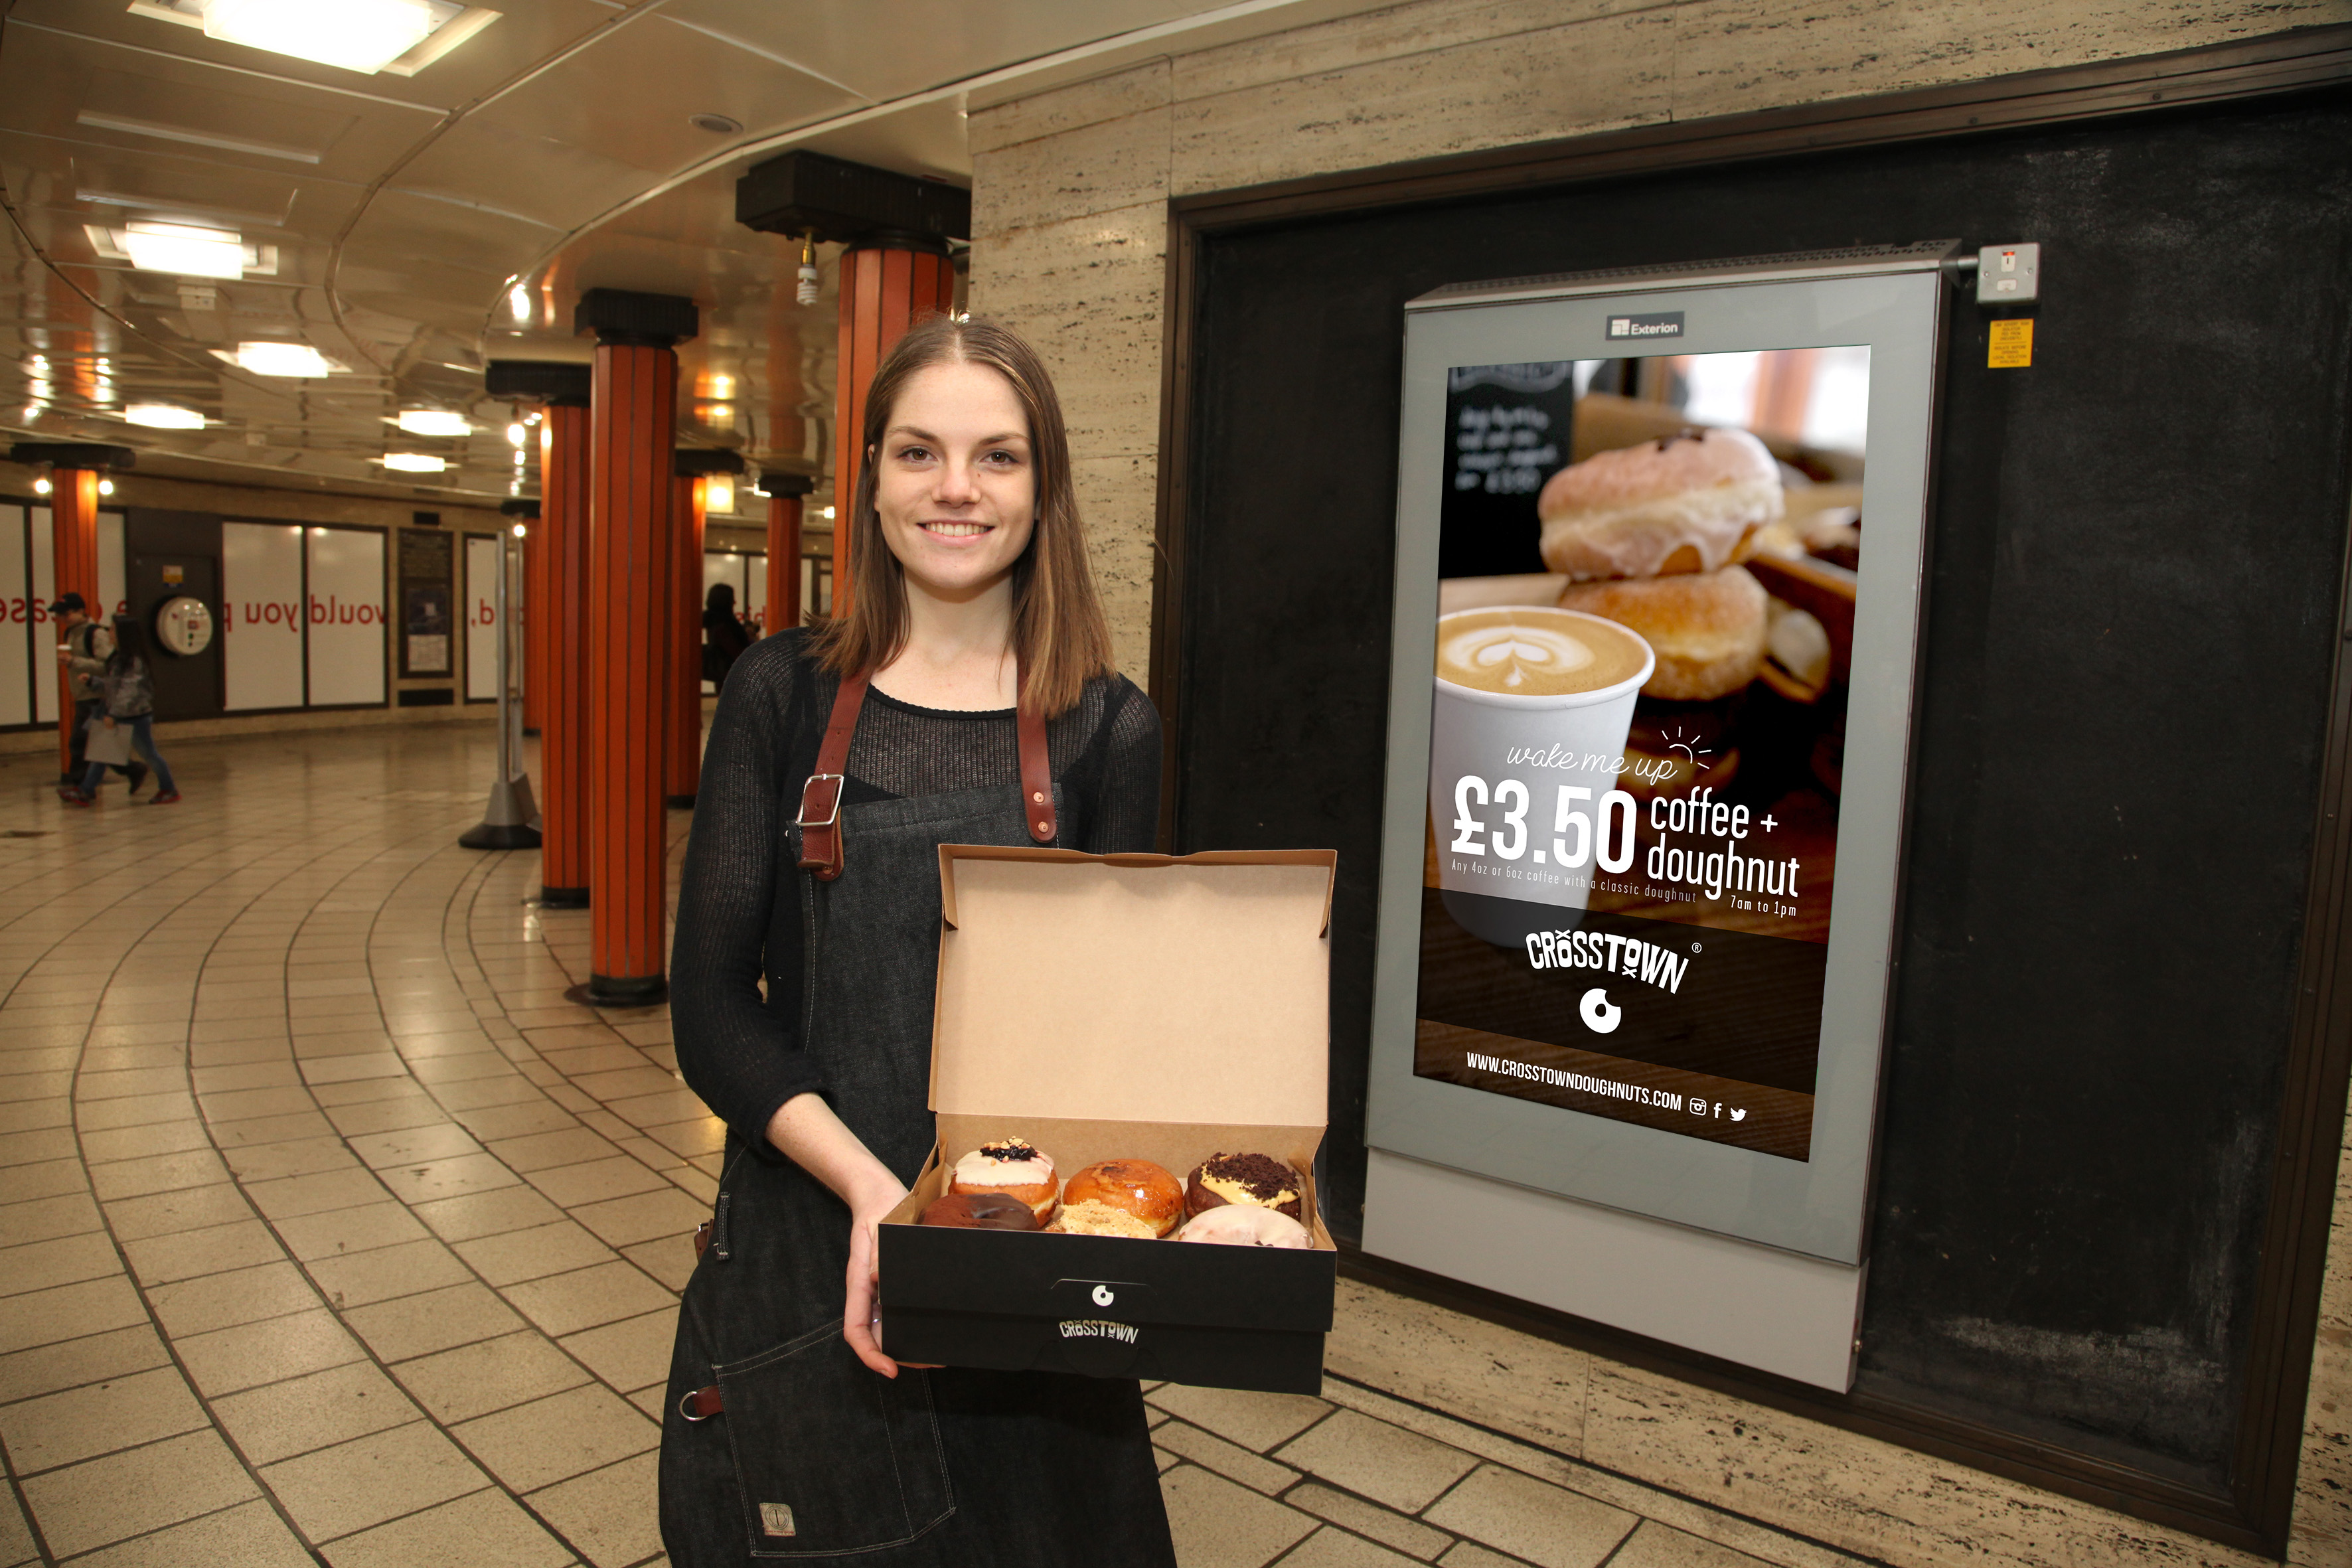 No holes found in doughnut shop's TfL real-time advertising campaign